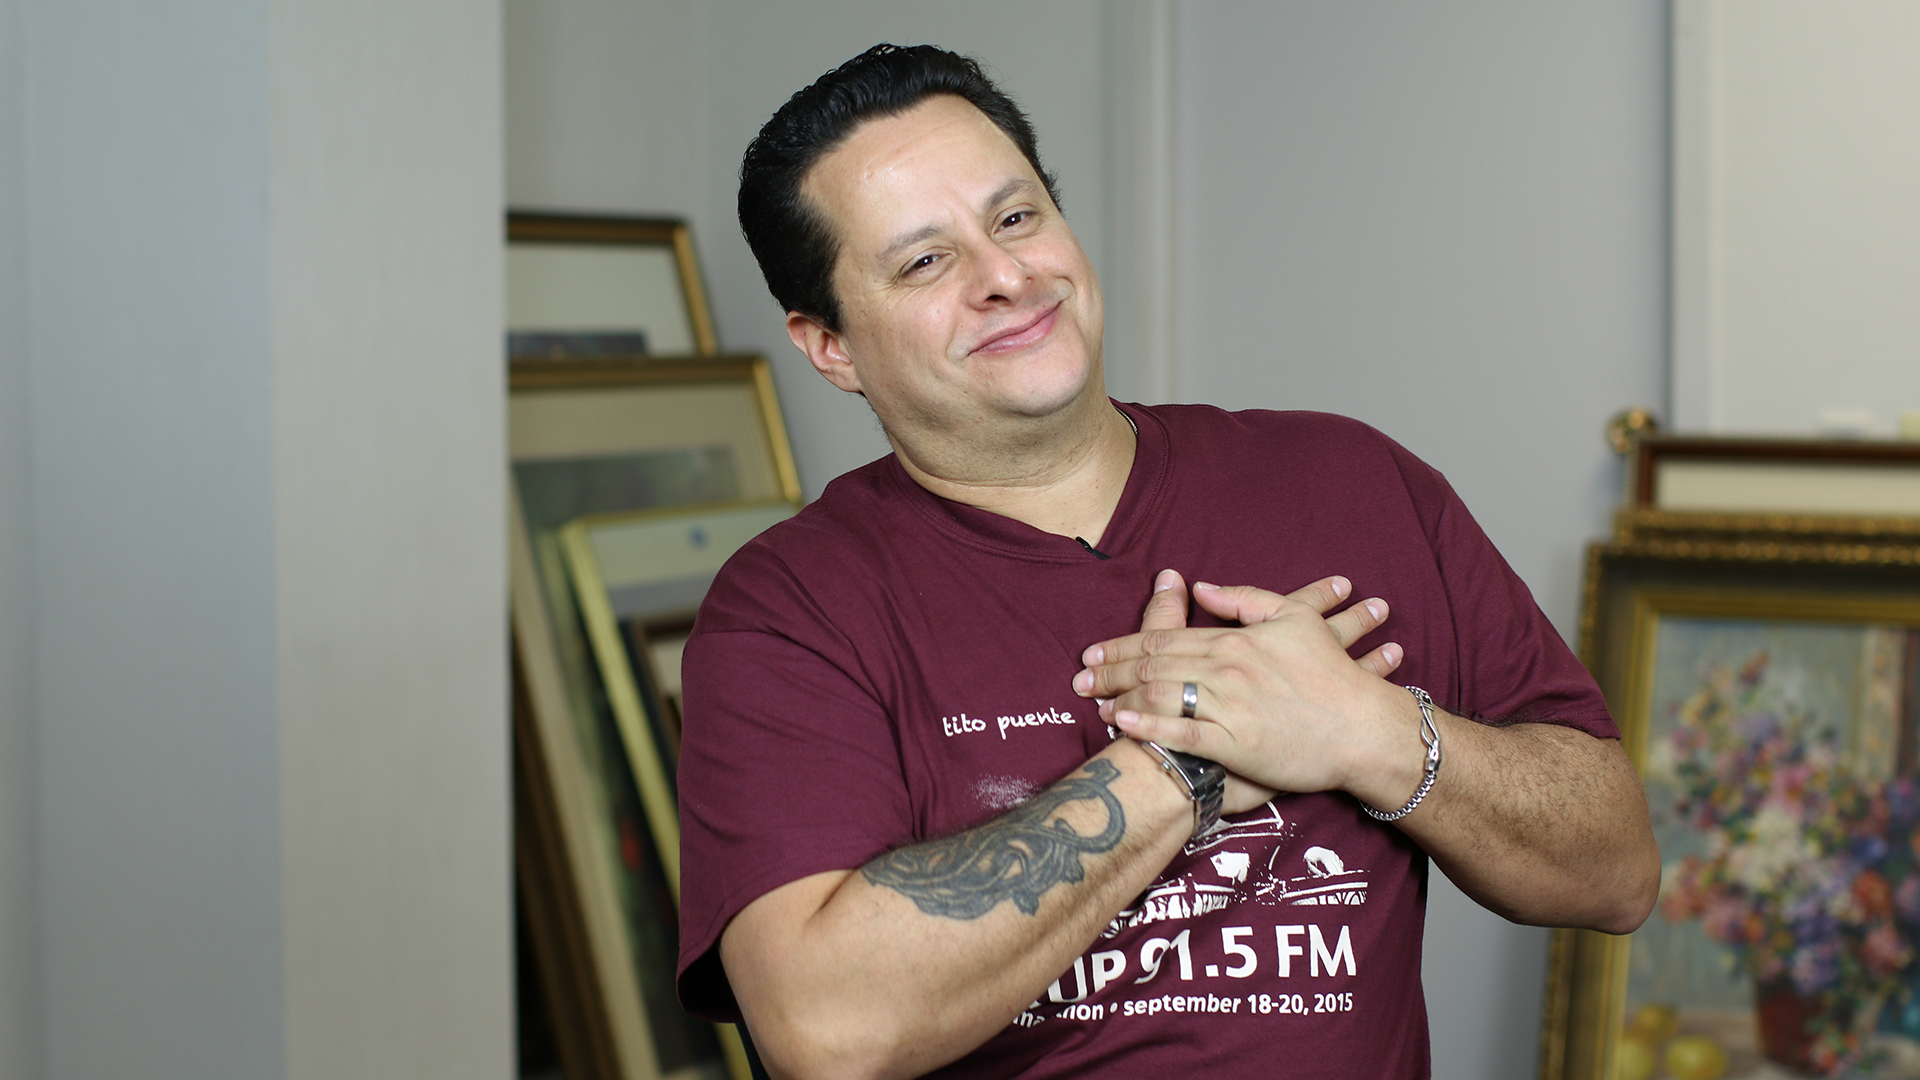 Tito Puente Jr.: You Have to Find Happiness in Being Grateful — Photo Credit: Shefik